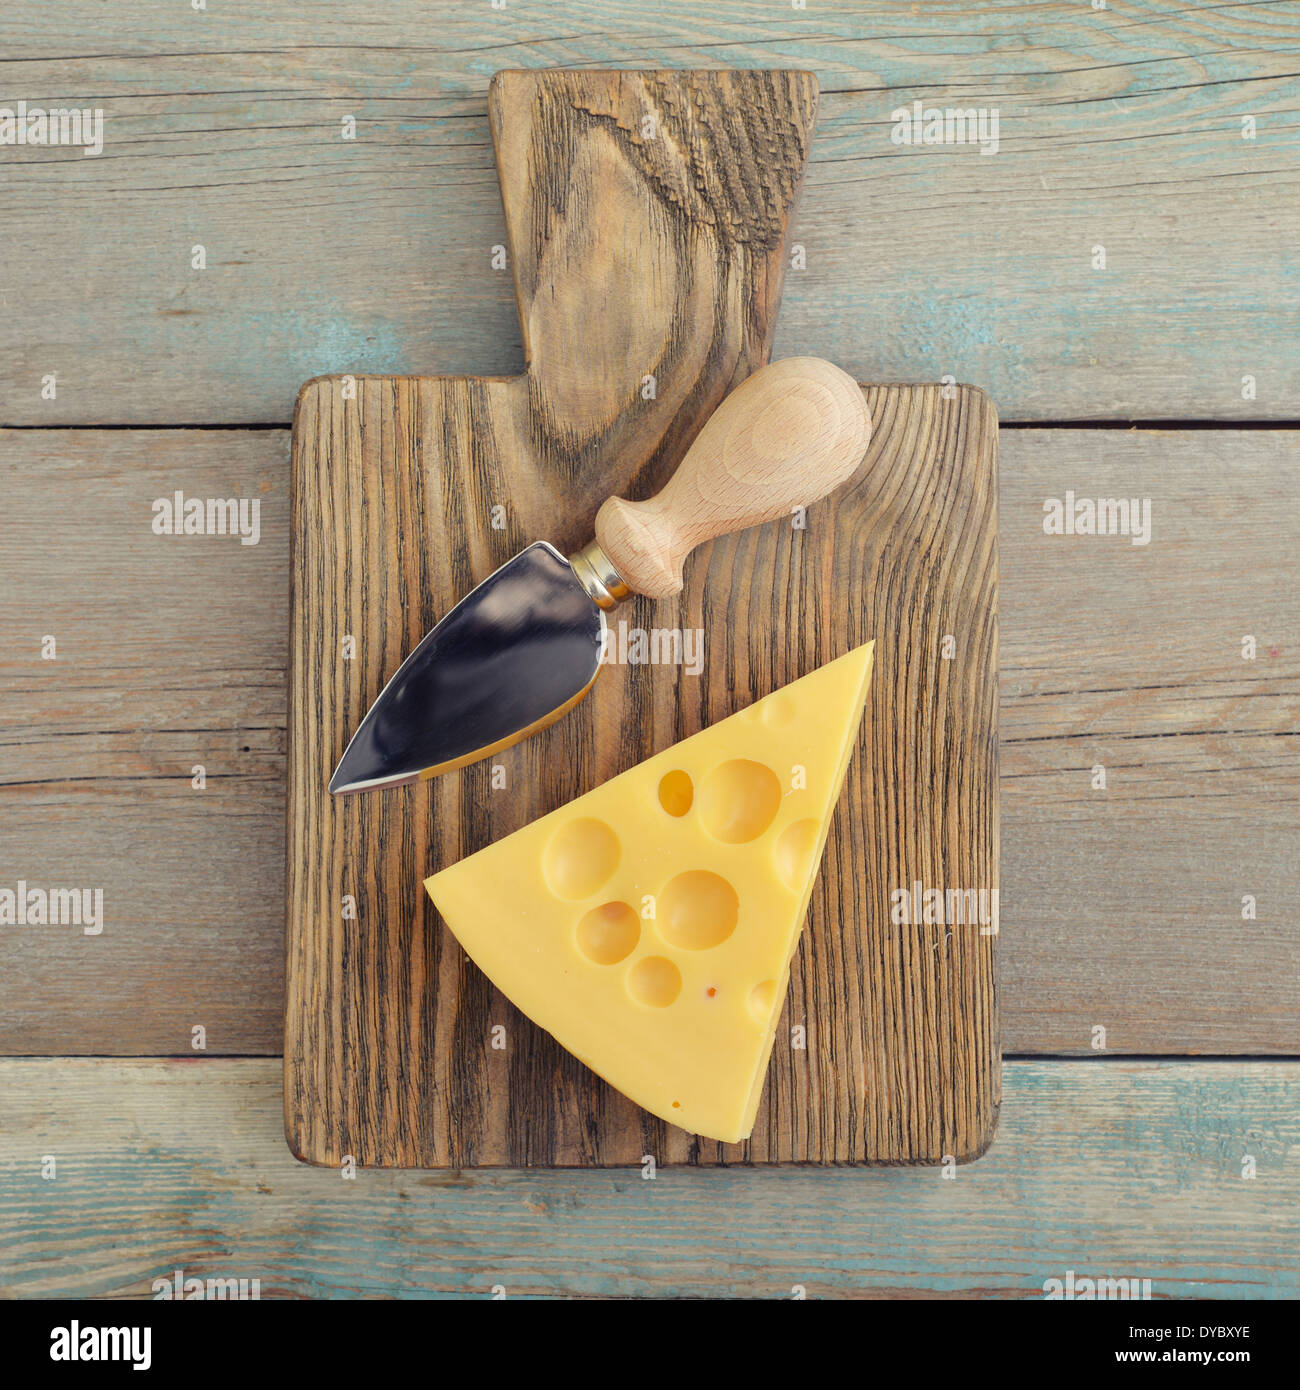 Cheese with big holes and knife on wooden cutting board - Stock Image